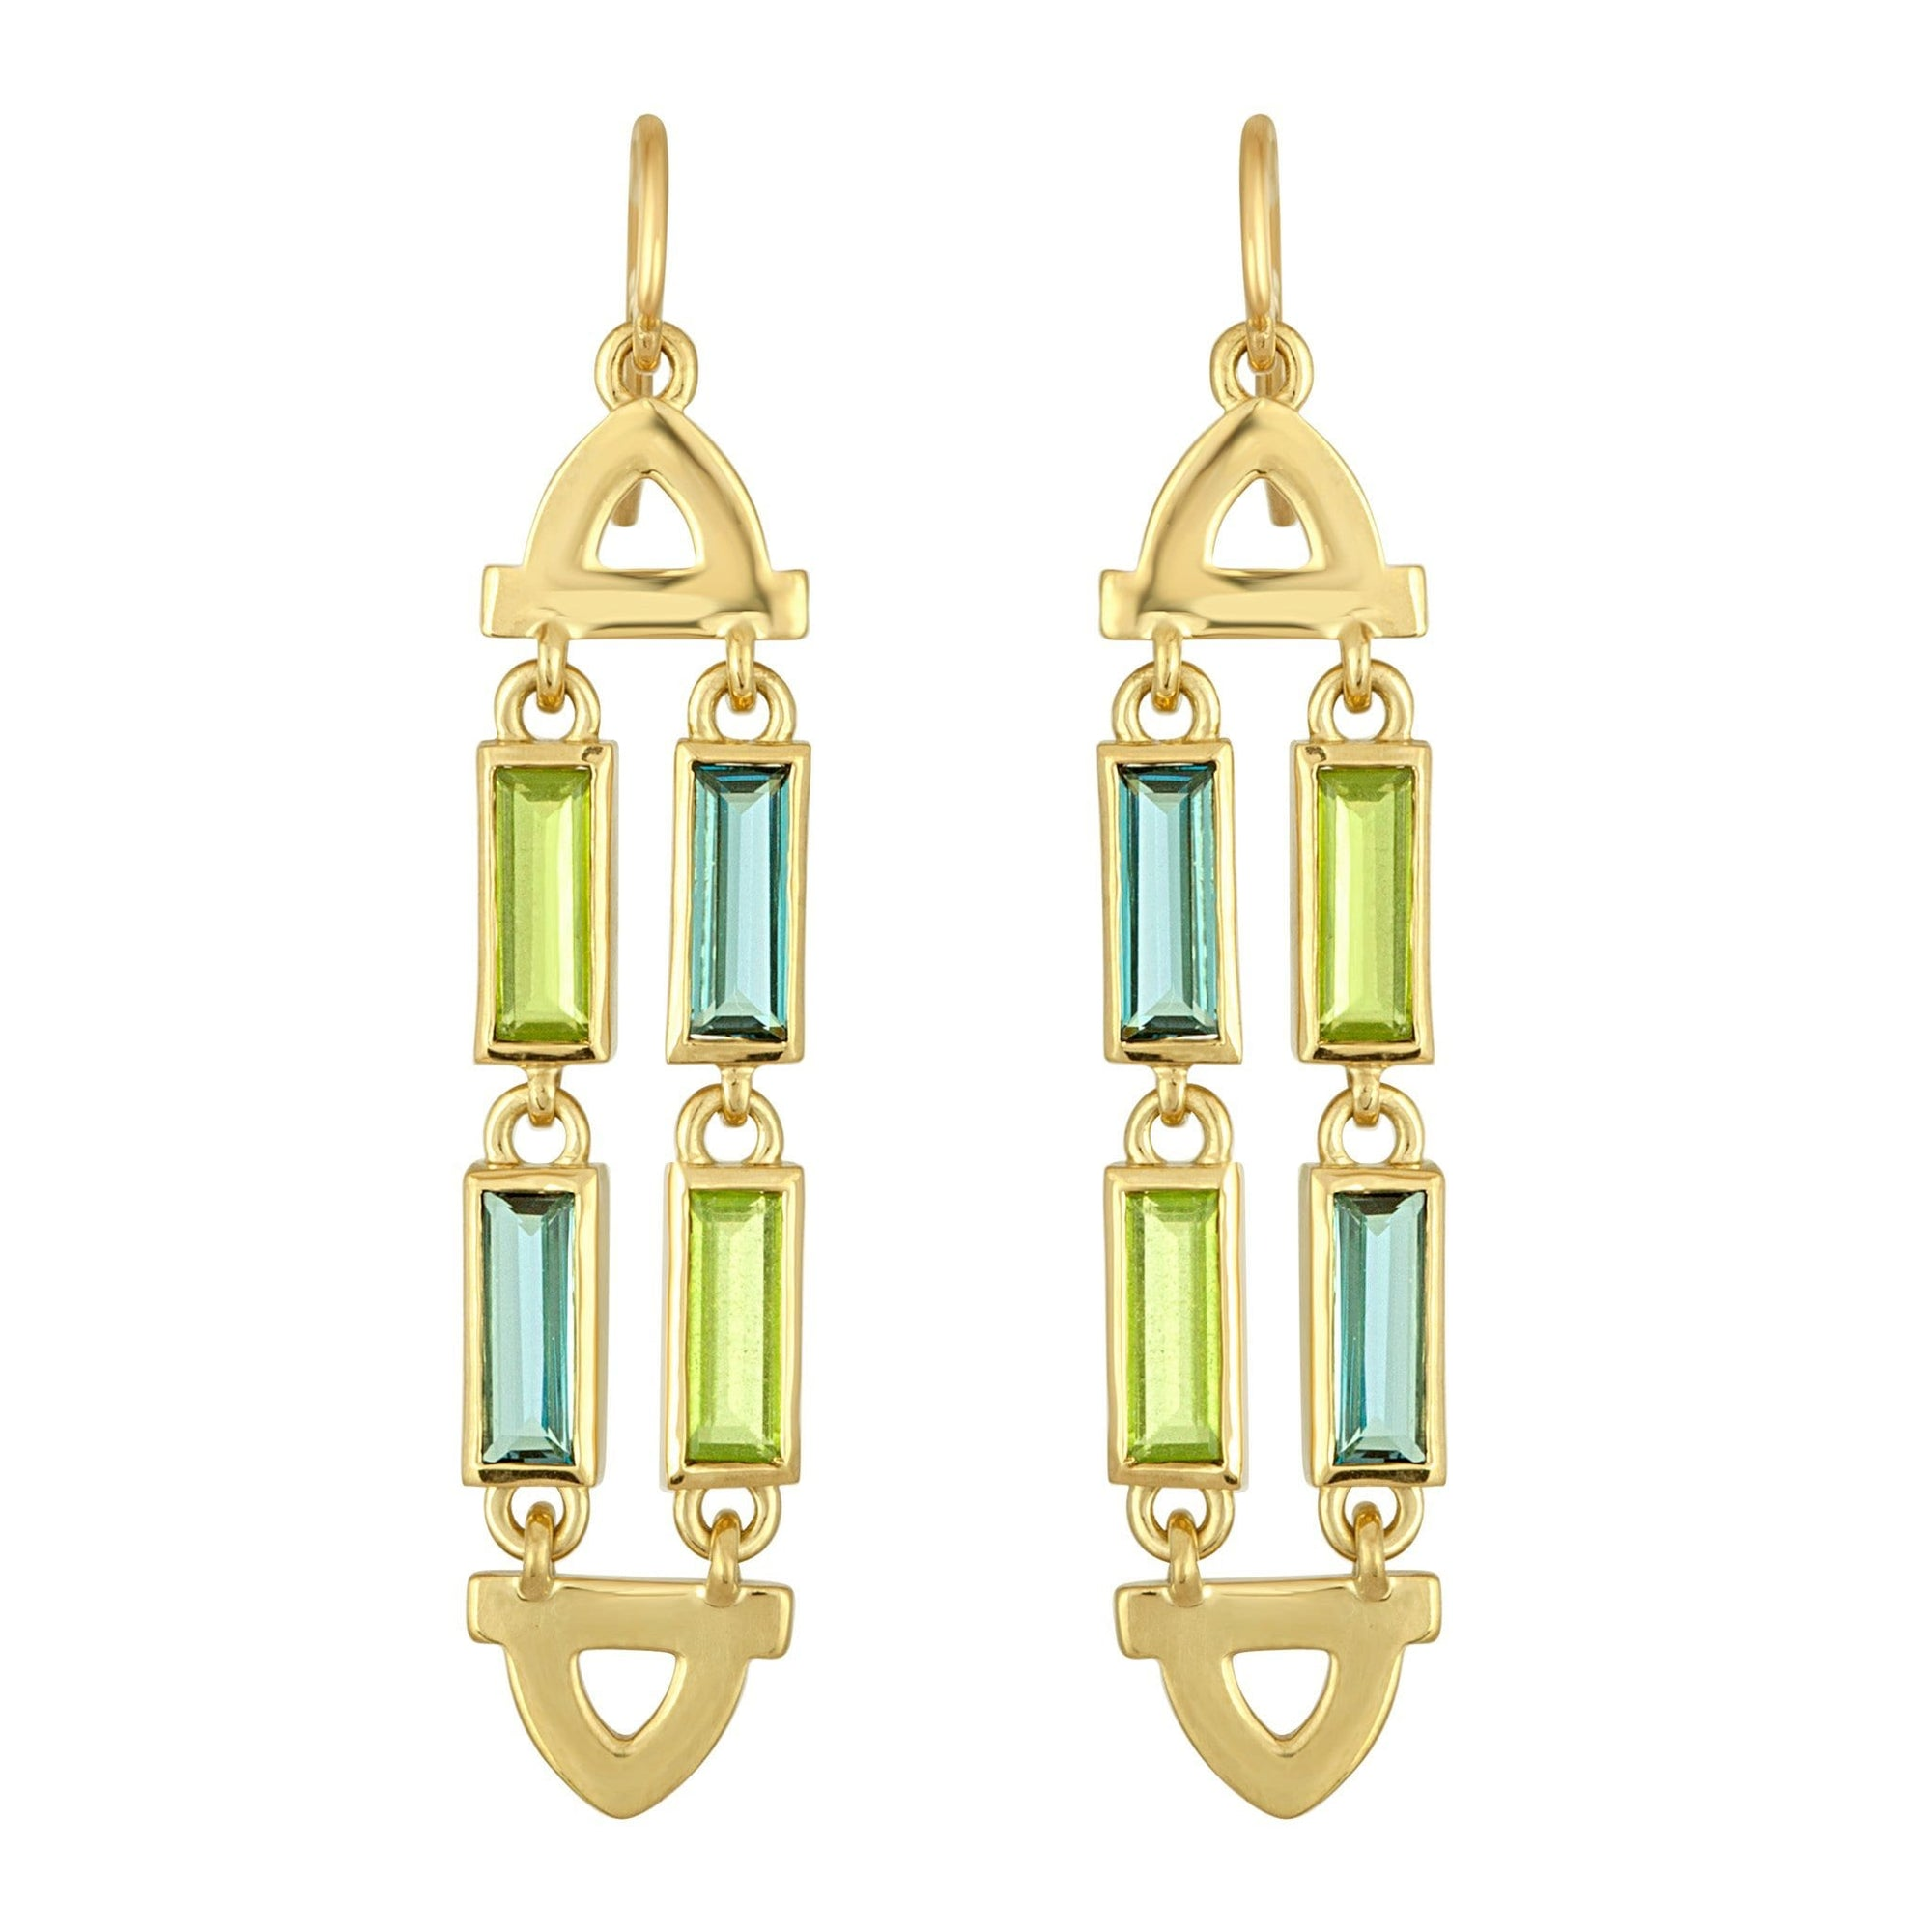 Arch Double Earrings: 18k Gold, Blue Topaz, Peridot Baguettes